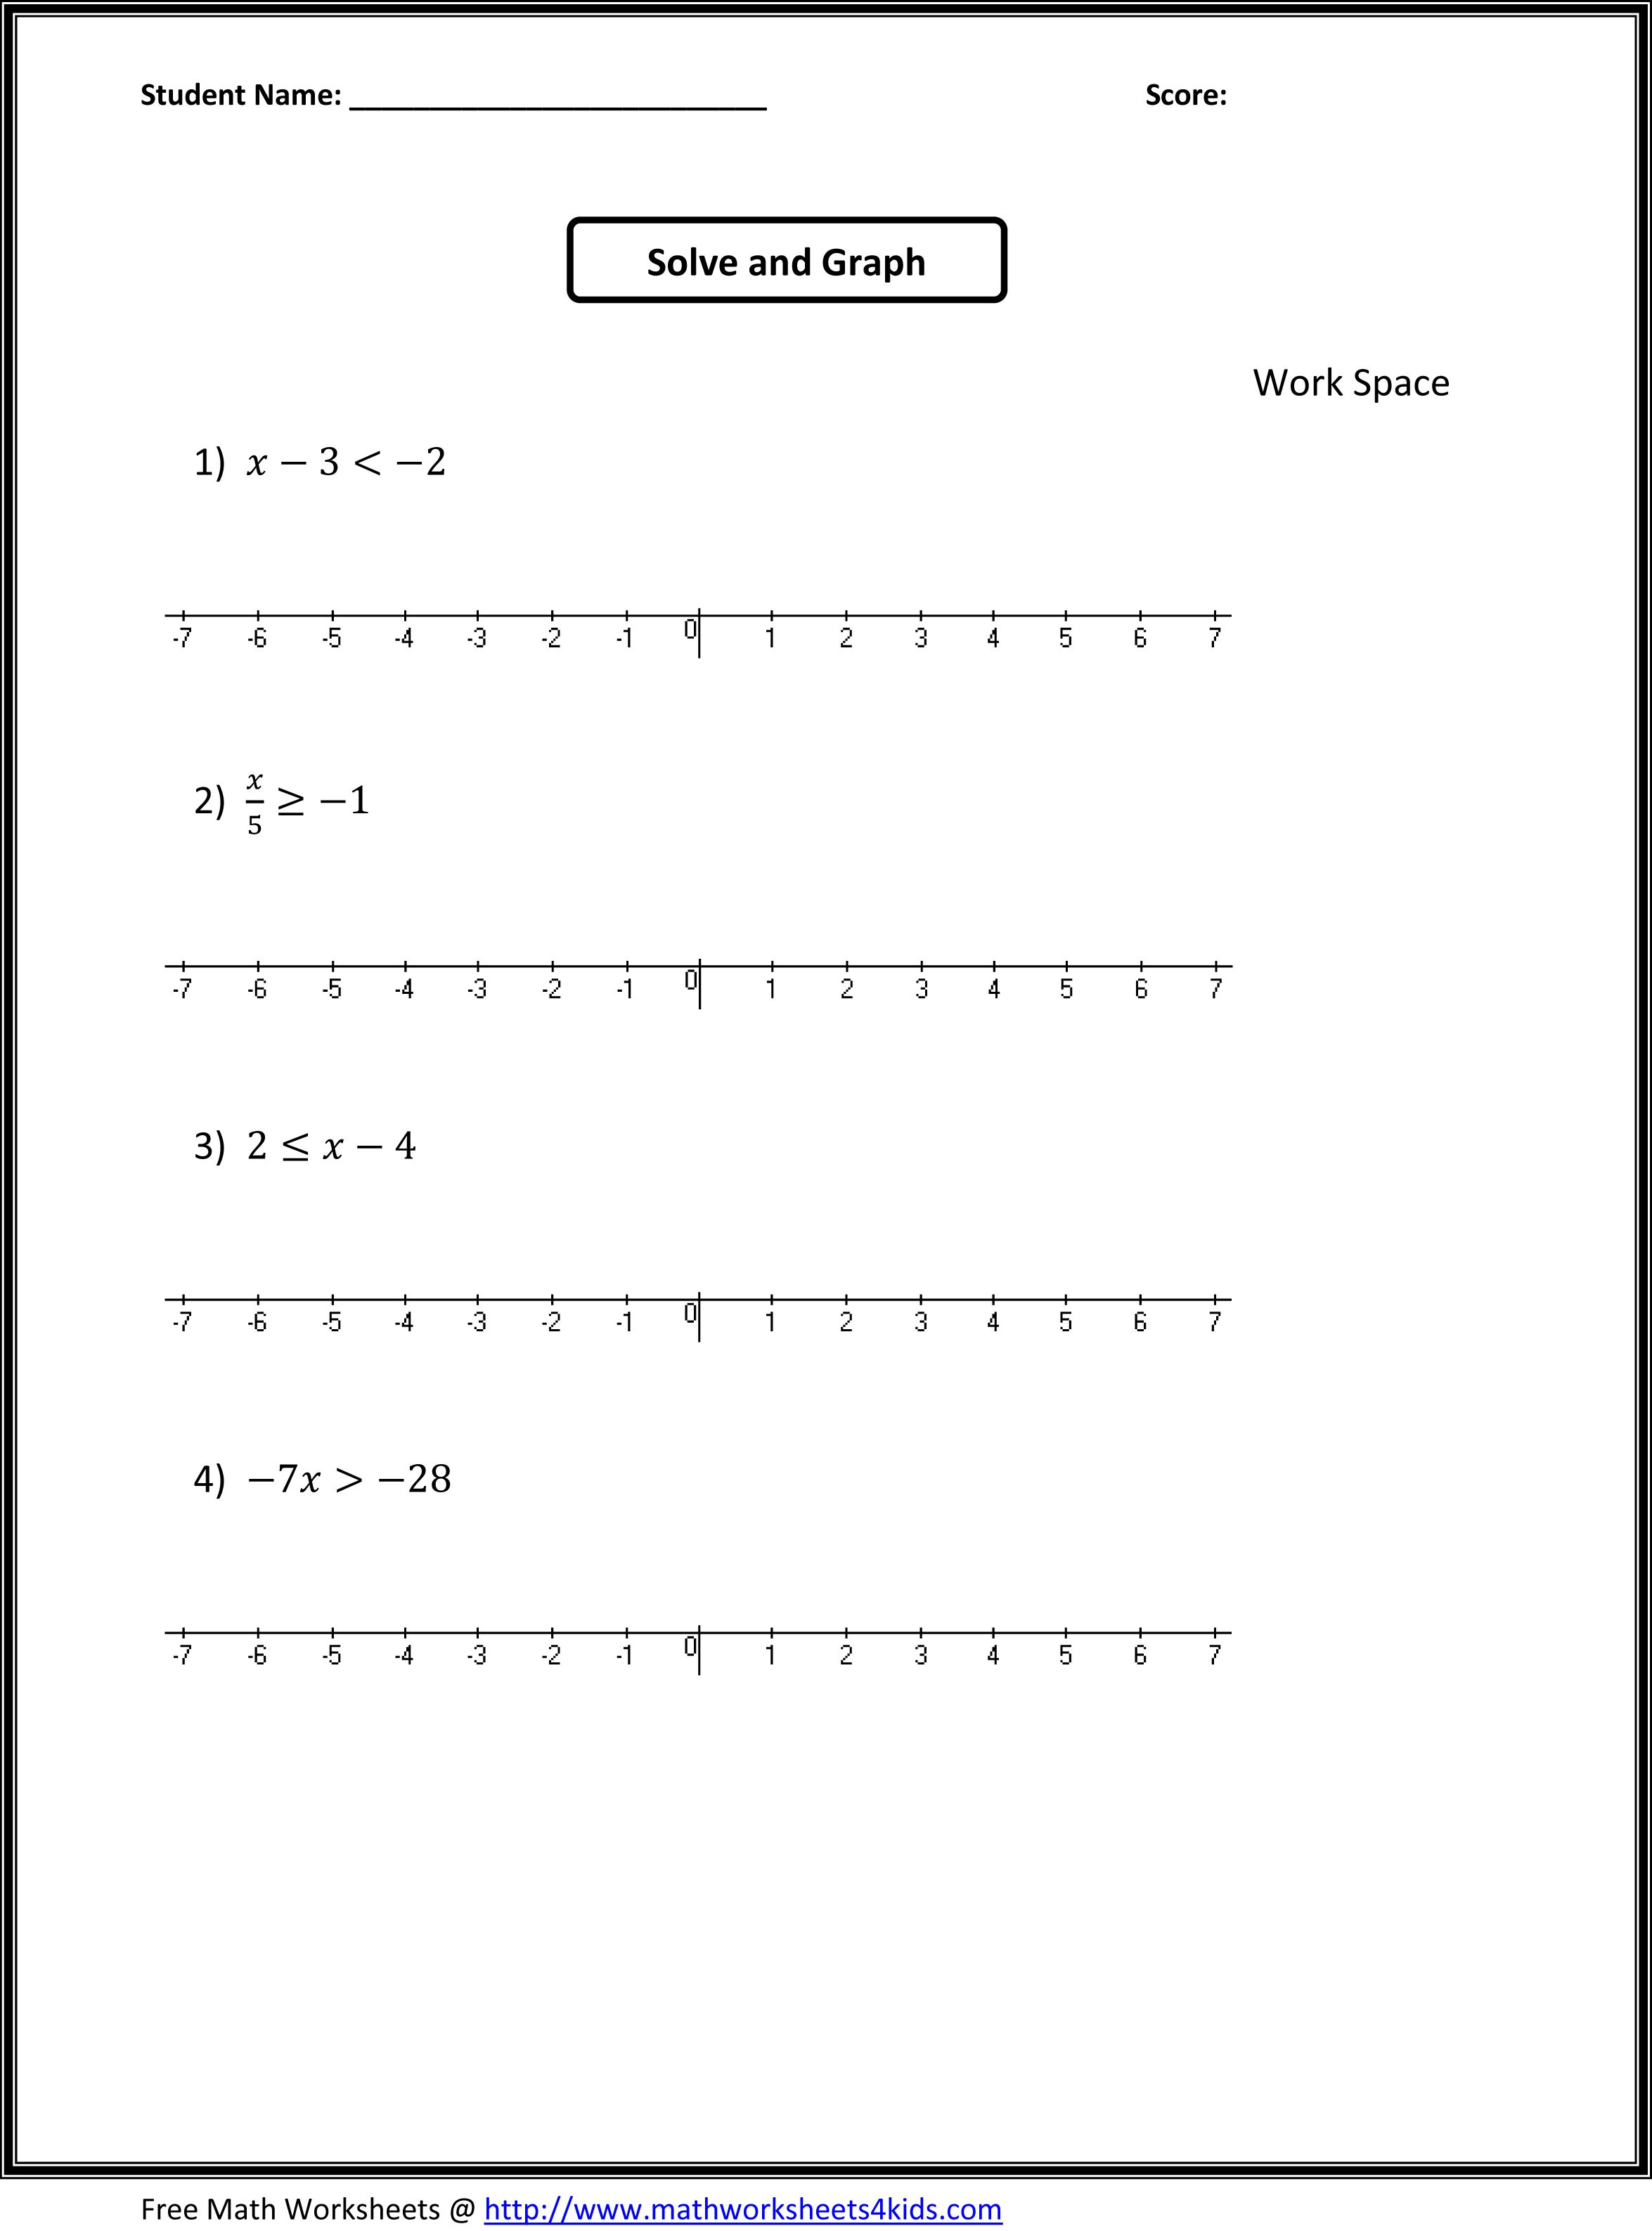 hight resolution of 7th Grade Math Worksheets   7th grade math worksheets